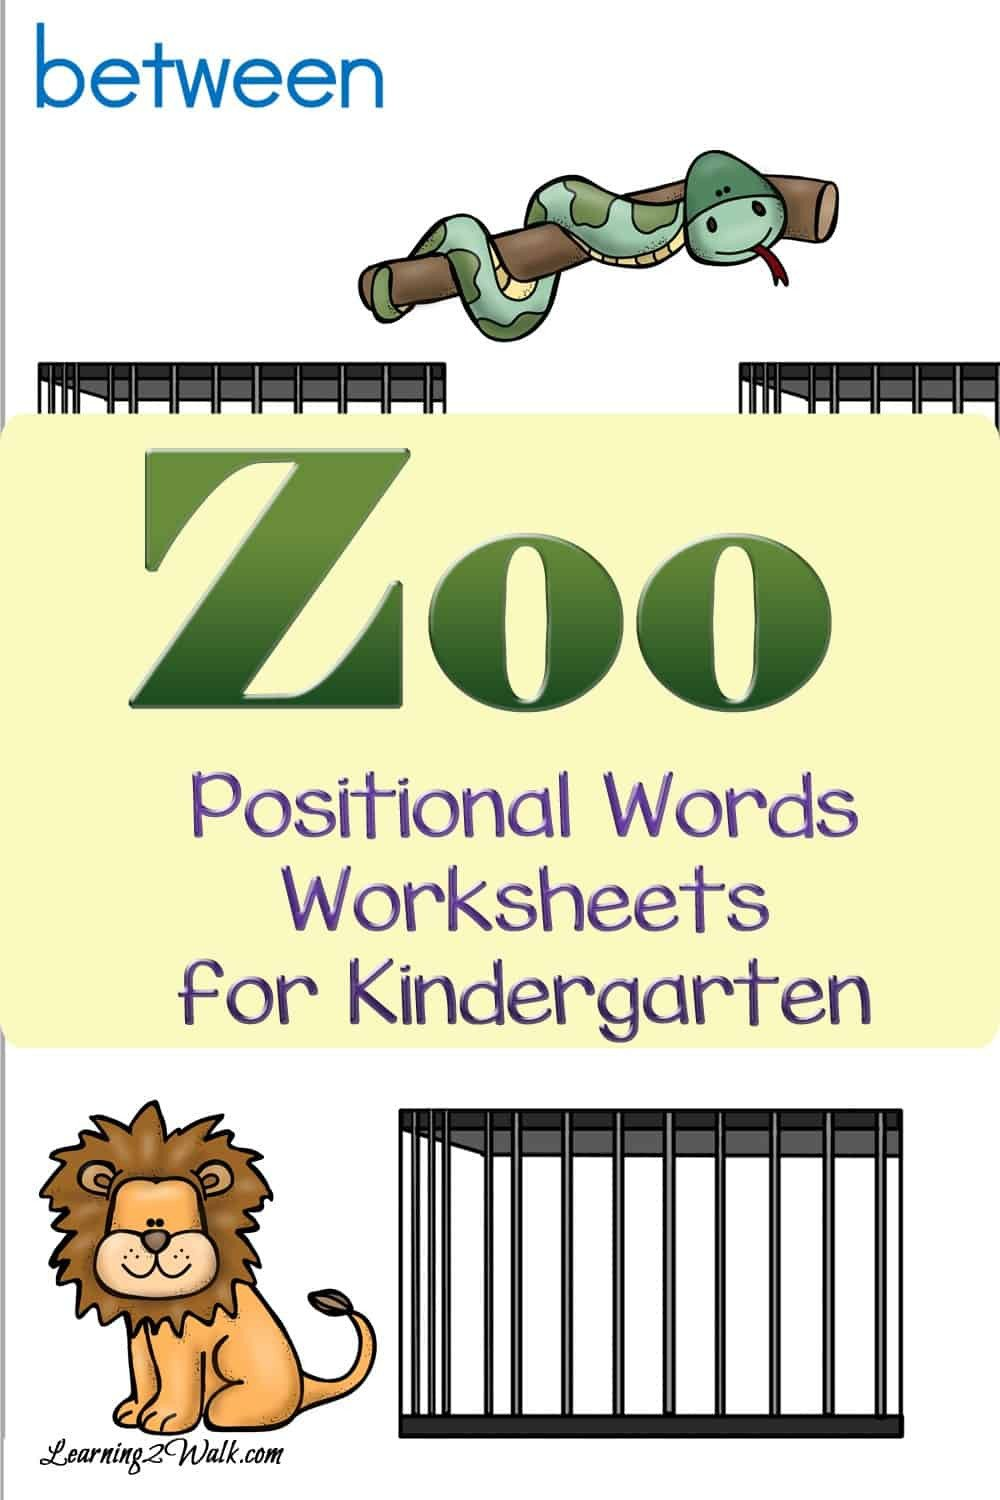 Positional Words Worksheets for Preschool Zoo Positional Words Worksheets for Kindergarten